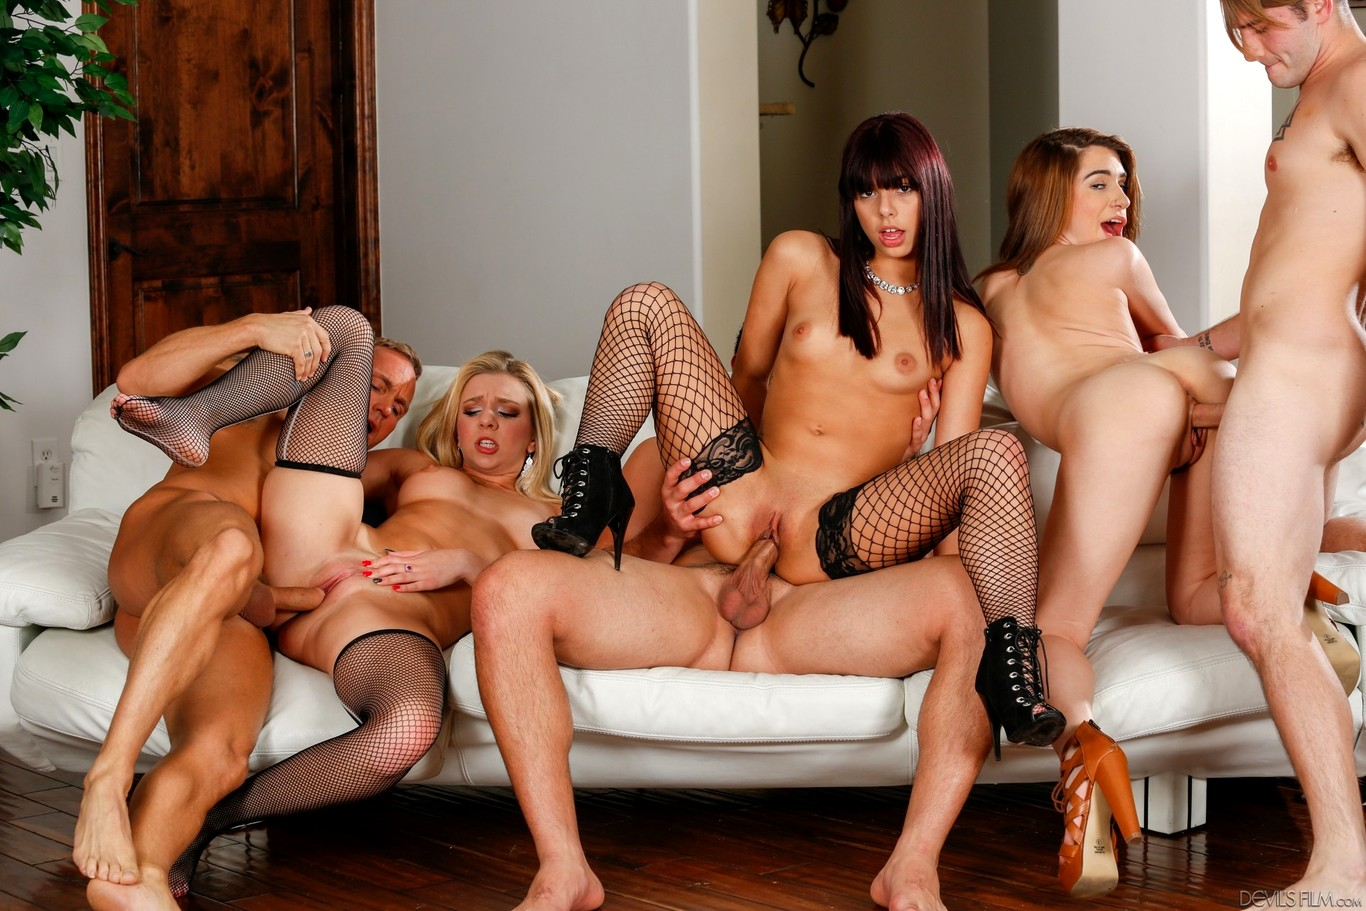 Sex group picture, sexy women blowjob